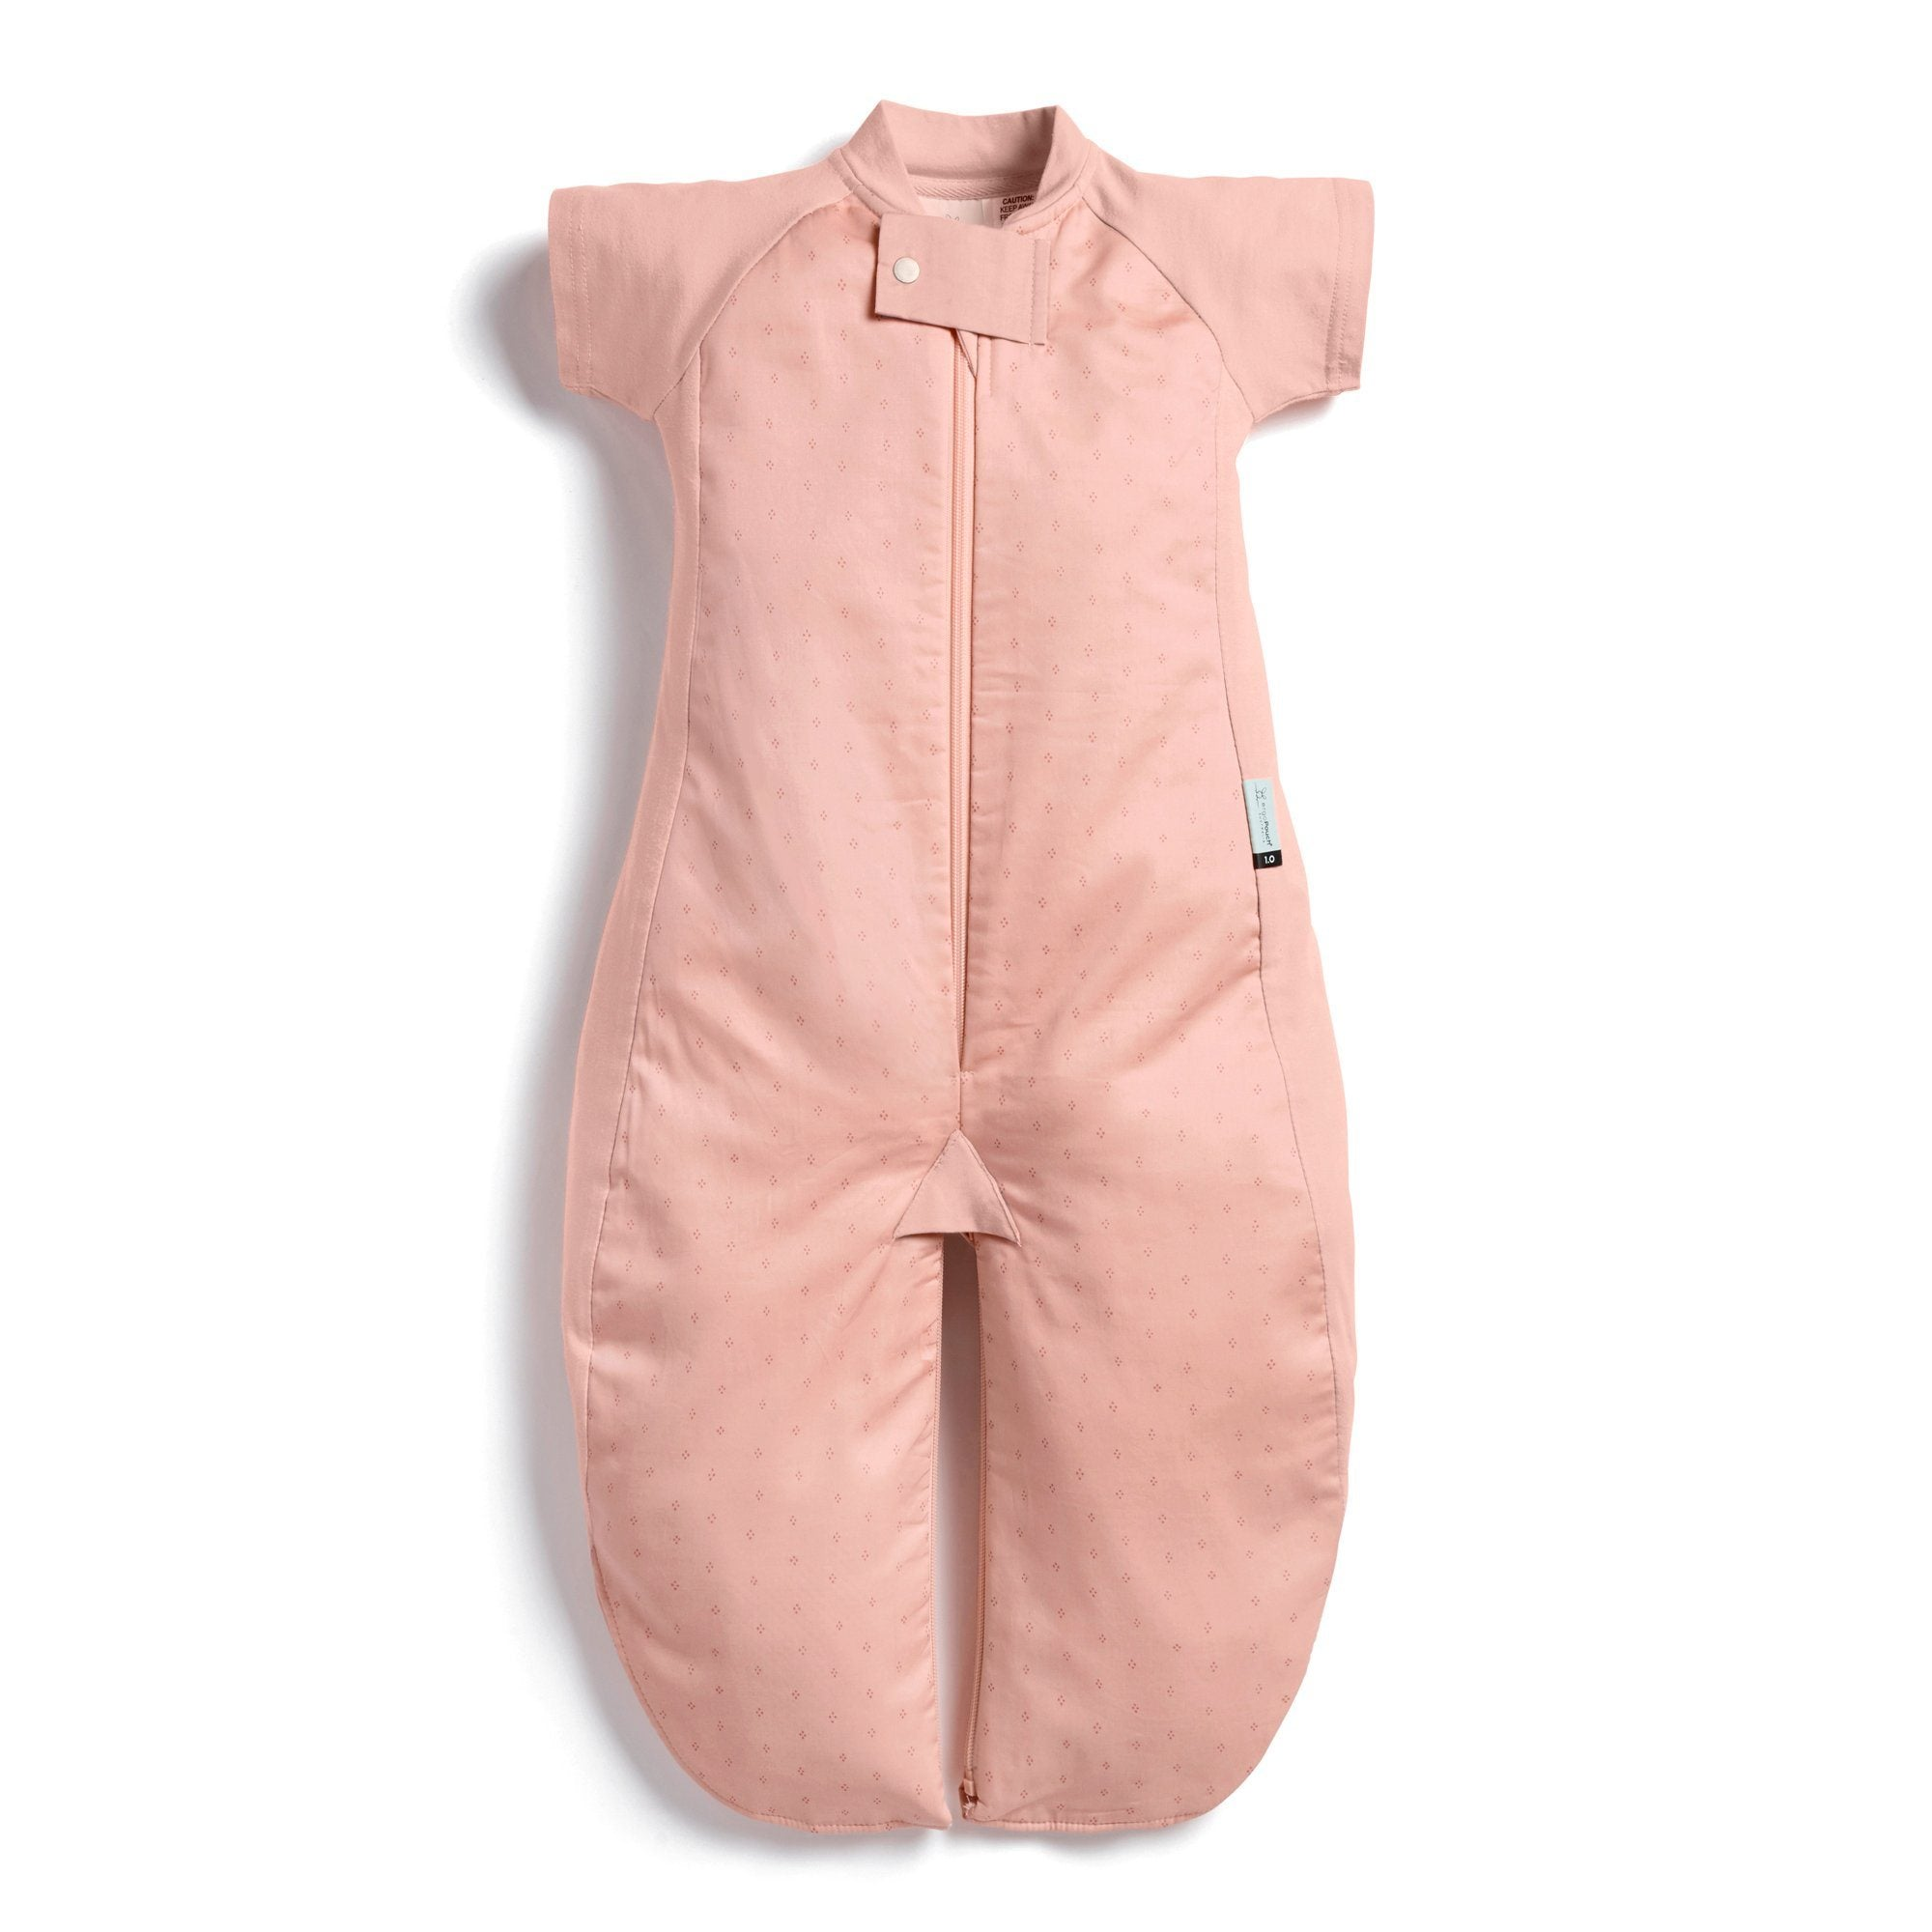 Sleep Suit Bag 1.0 tog (Berries)